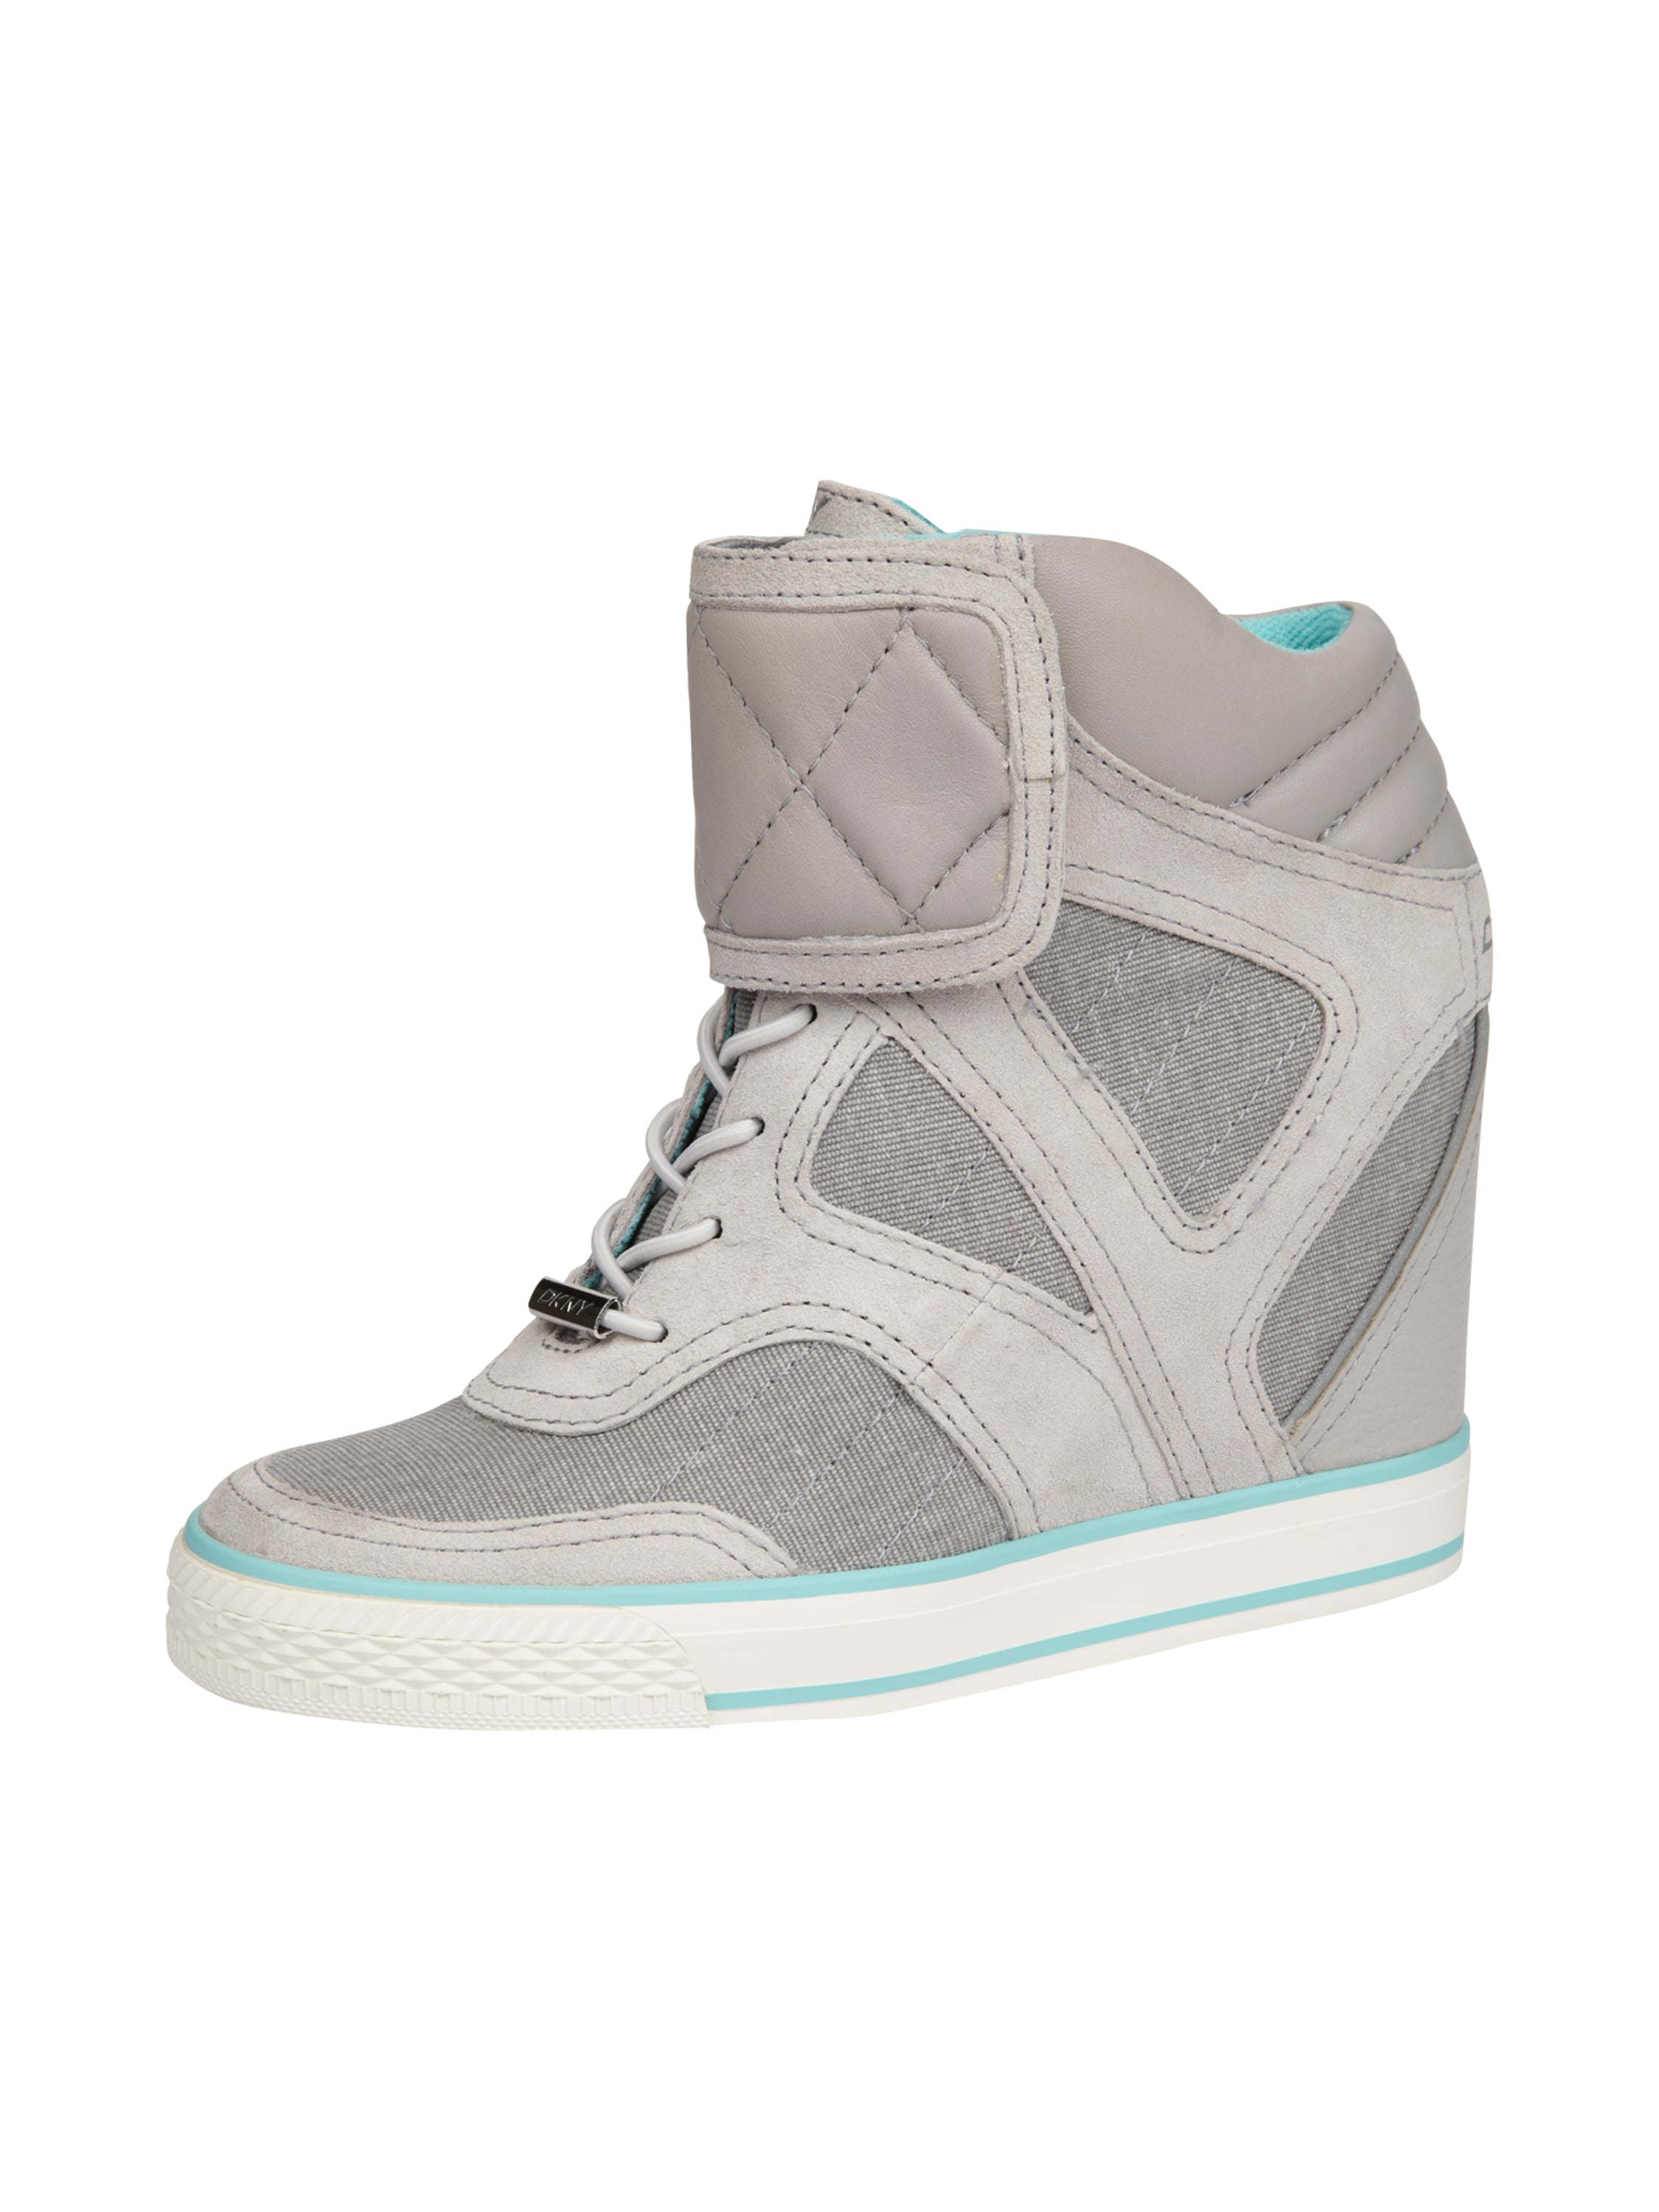 sneaker wedges aus echtem leder fashion id online shop. Black Bedroom Furniture Sets. Home Design Ideas